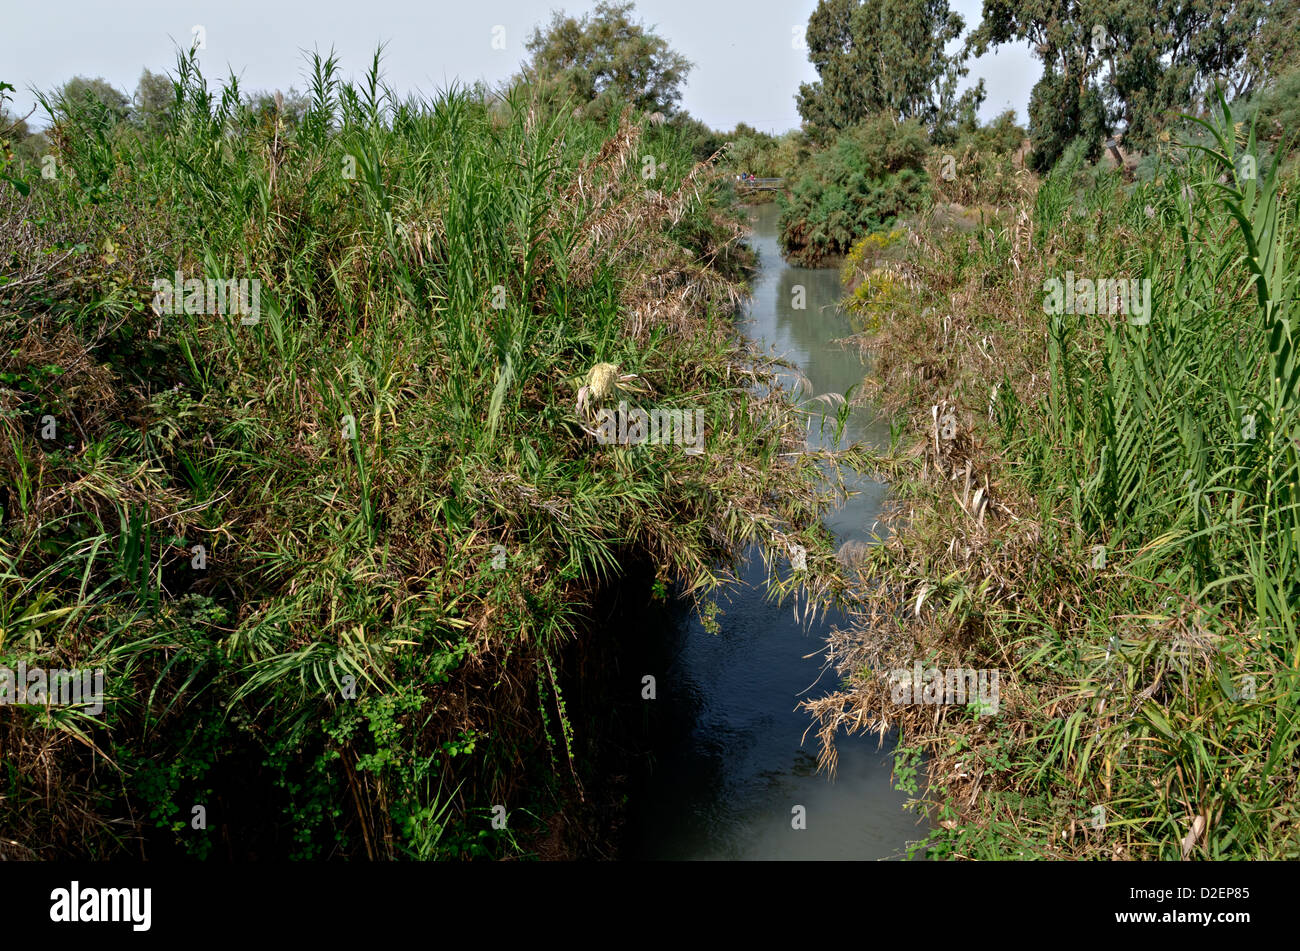 Israel, Northern District Ein Afek Nature Reserve on the Naaman River - Stock Image